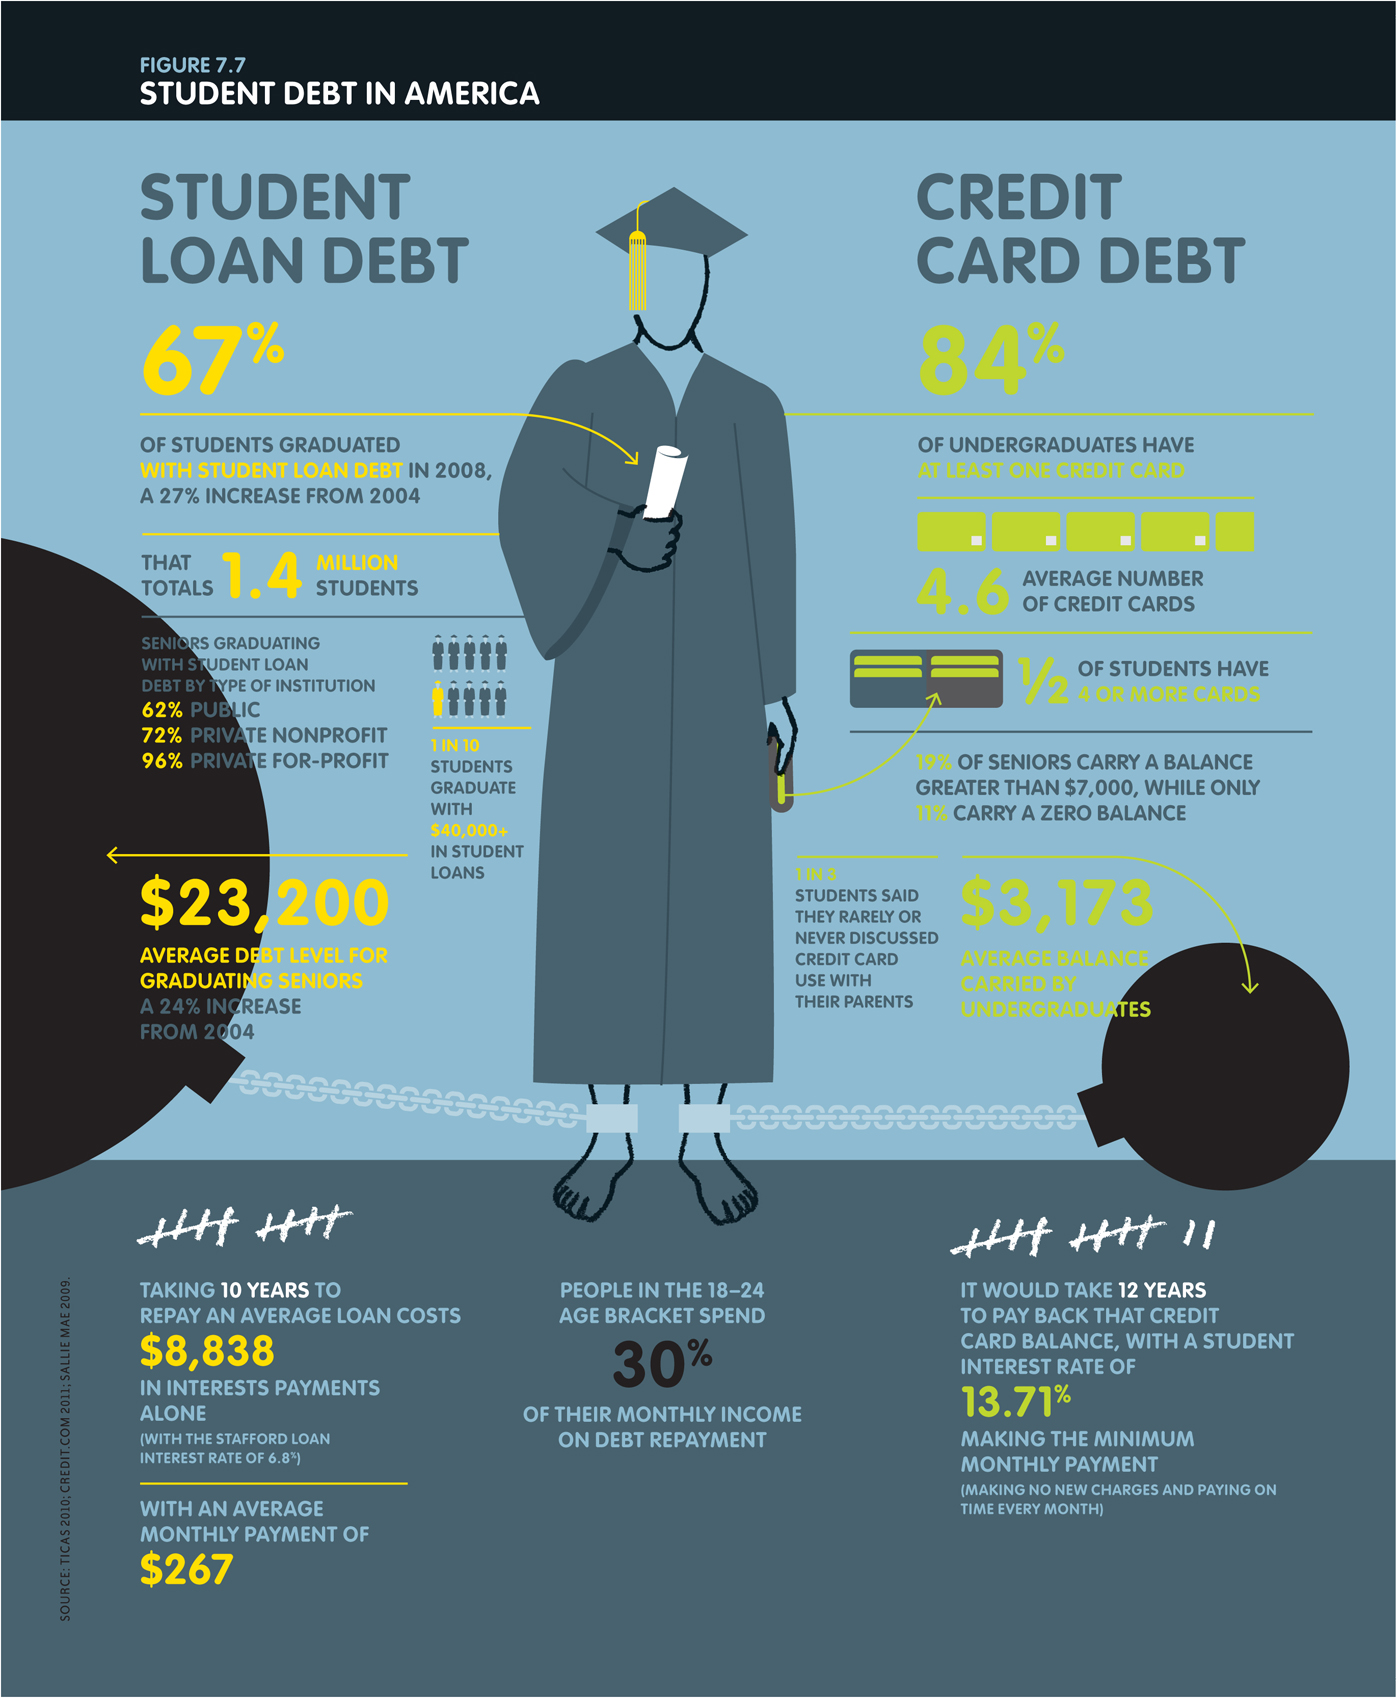 Student Loan Debt And Credit Card Debt